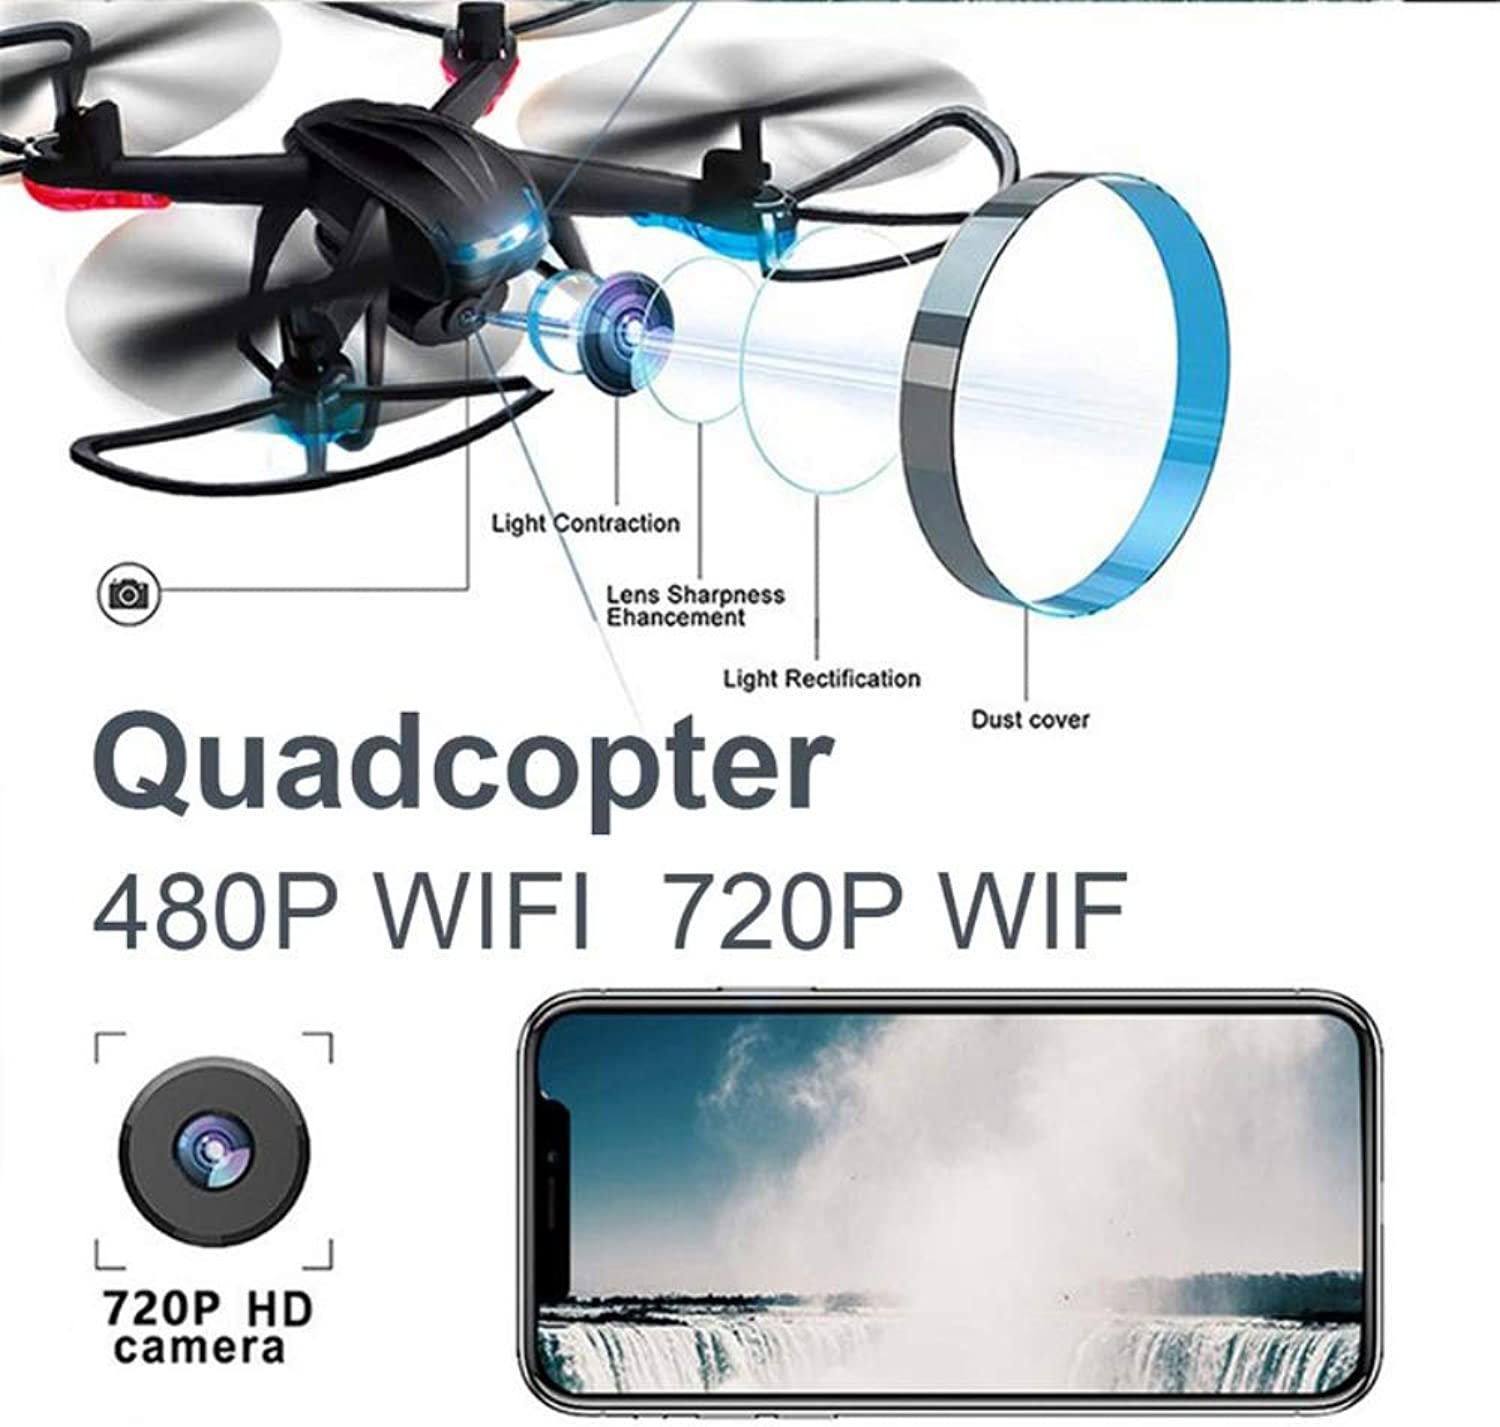 Drone with Carrying Case,Wireless RC Quadcopter Drone with 120 Degree WideAngle 720P HD Camera Altitude Hold